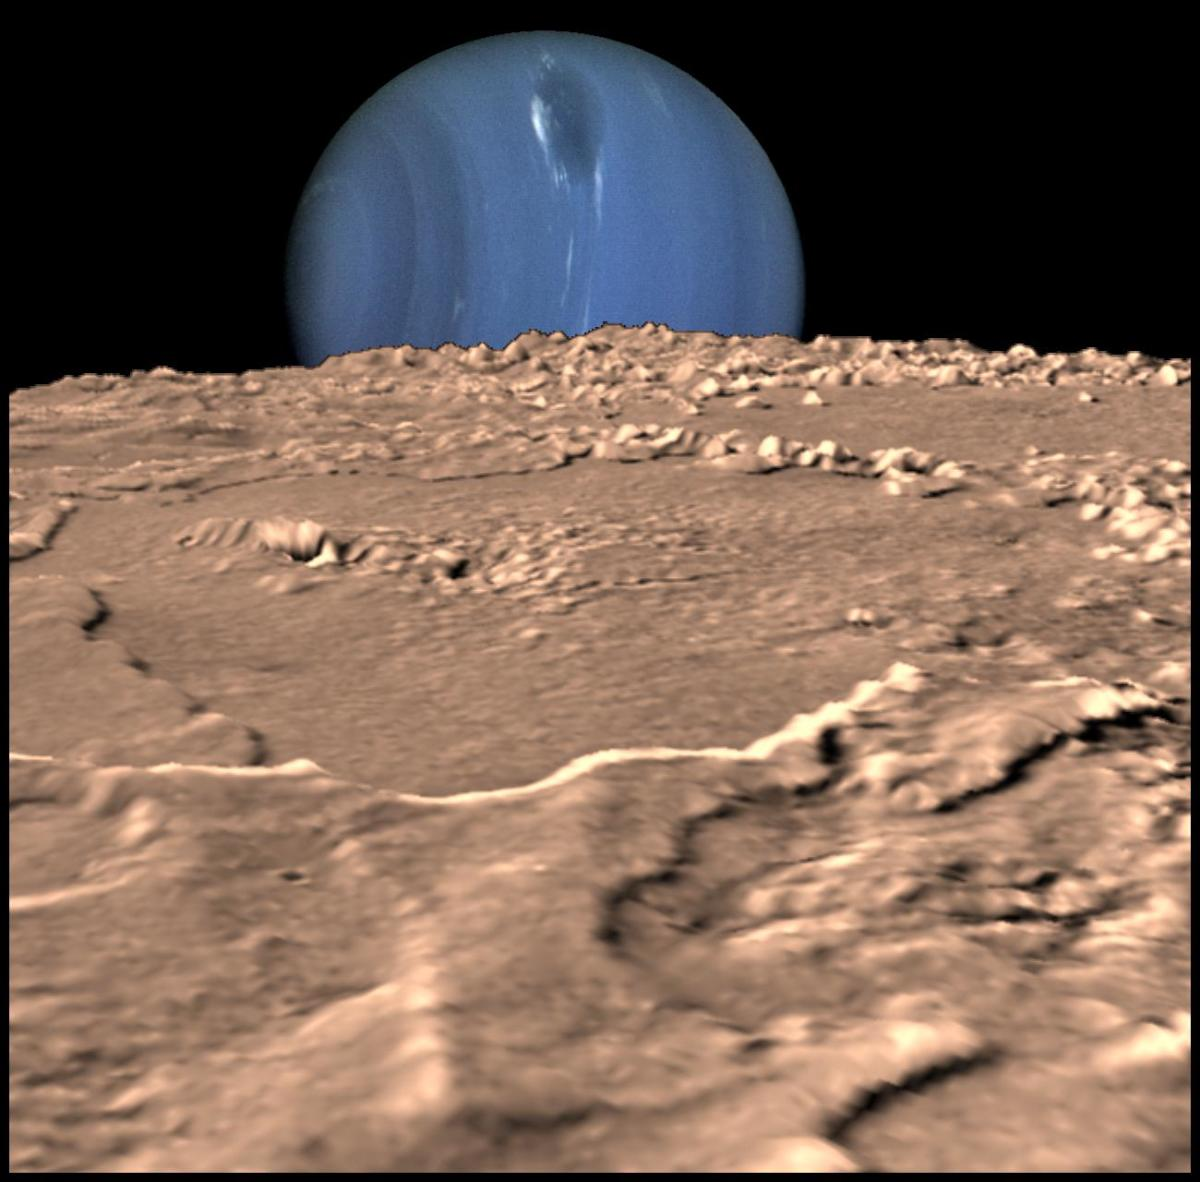 Voyager's image of Triton, with the ominous blue globe of Neptune behind it - the planet which will eventually seal it's fate, as Triton's orbit decays